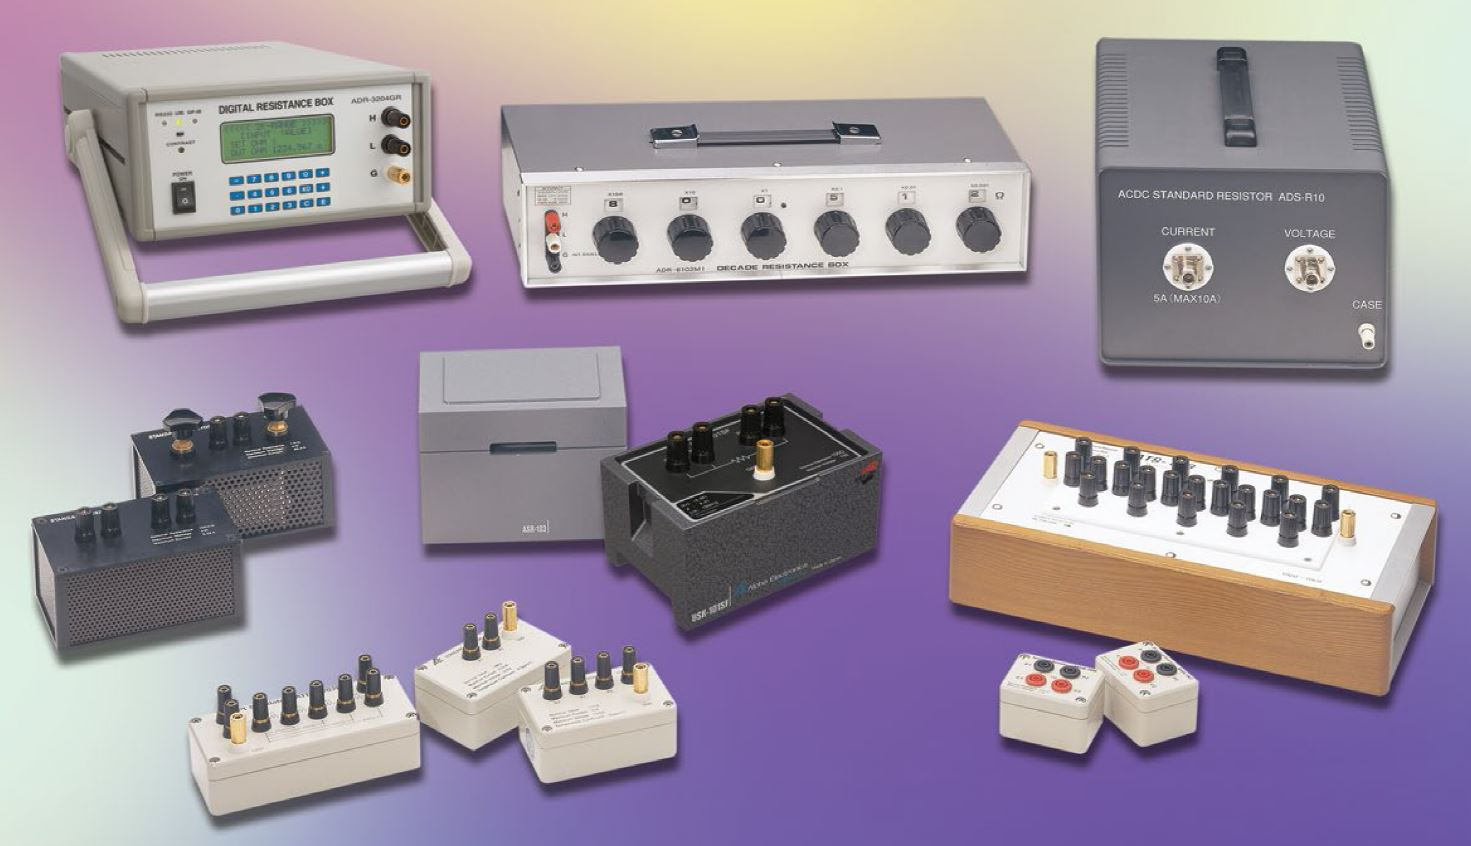 Standard Resistors, Decade Boxes, and Programmable Resistors